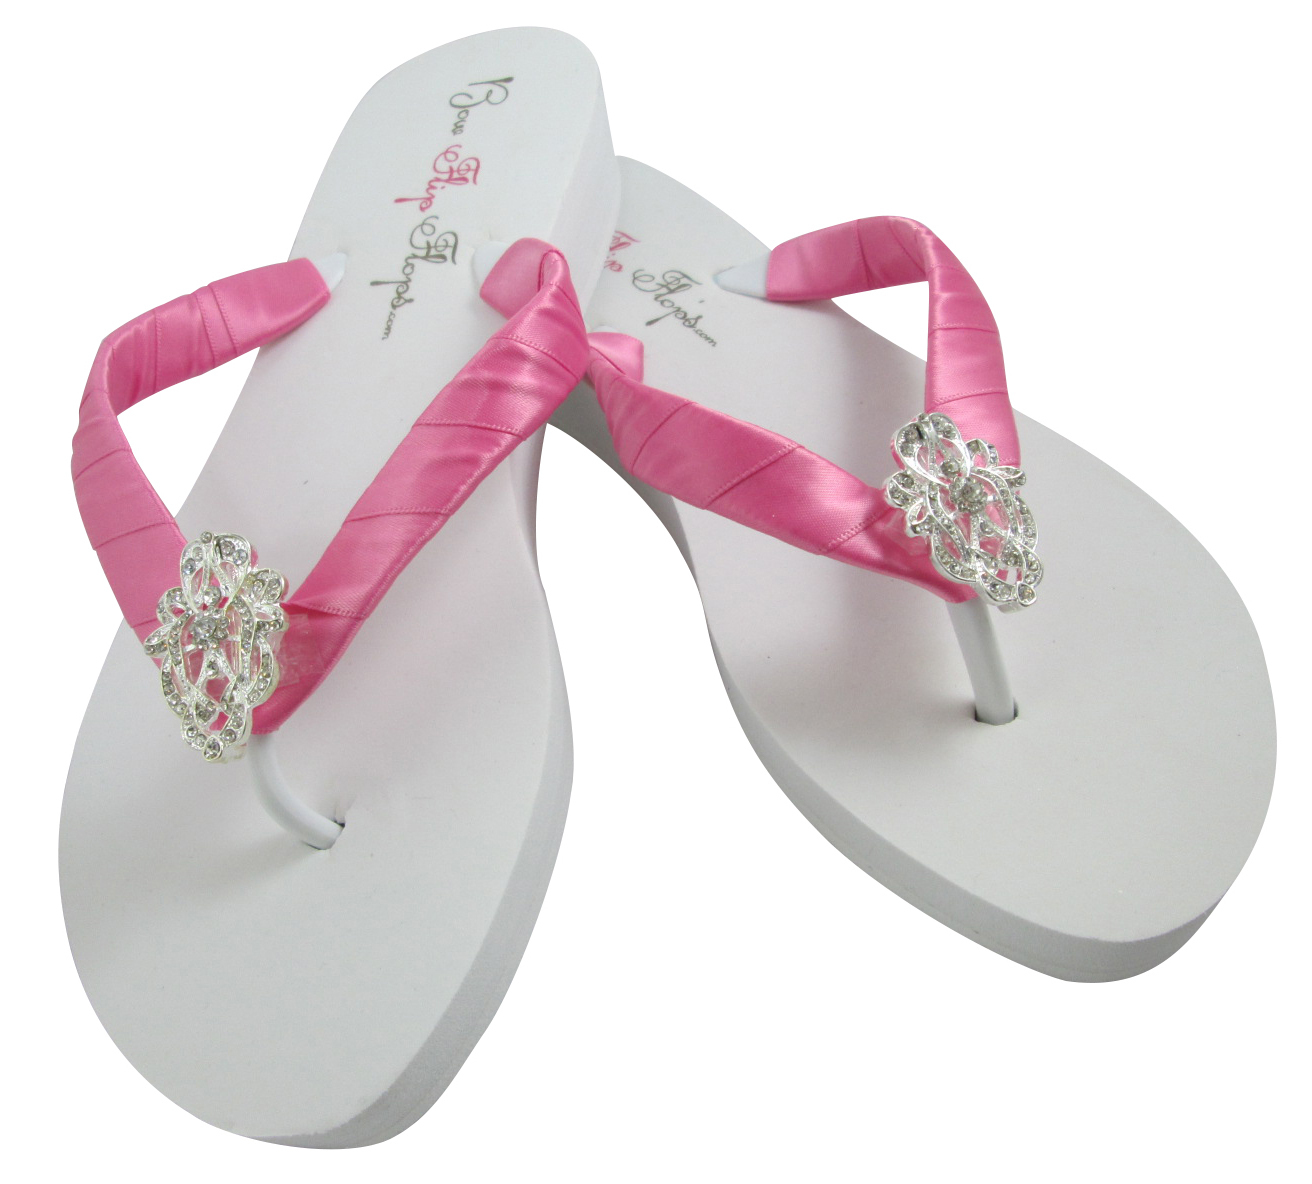 4bd7c81b9b4fa Bridal_flip_flops Sandal: 1 customer review and 133 listings